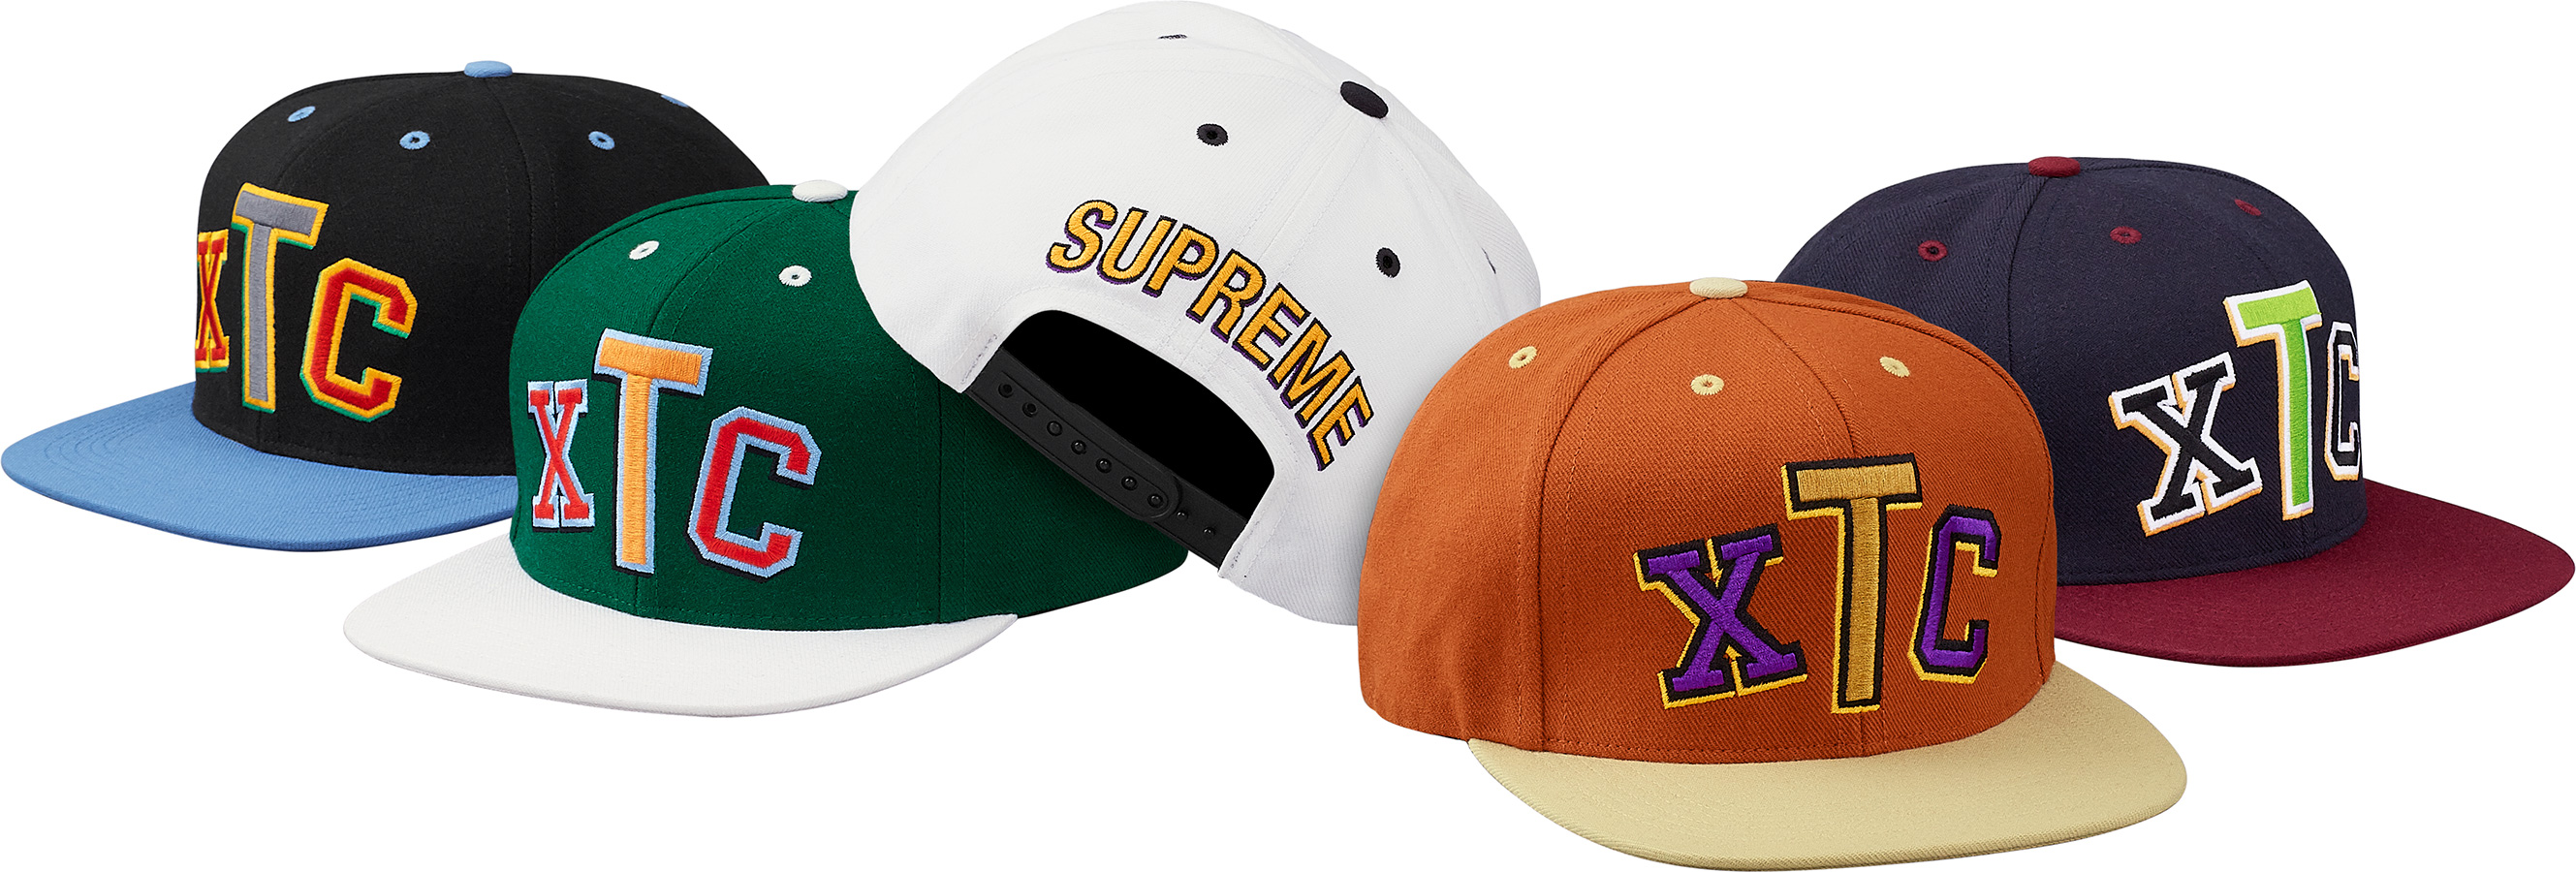 supreme-18ss-spring-summer-ecstasy-6-panel